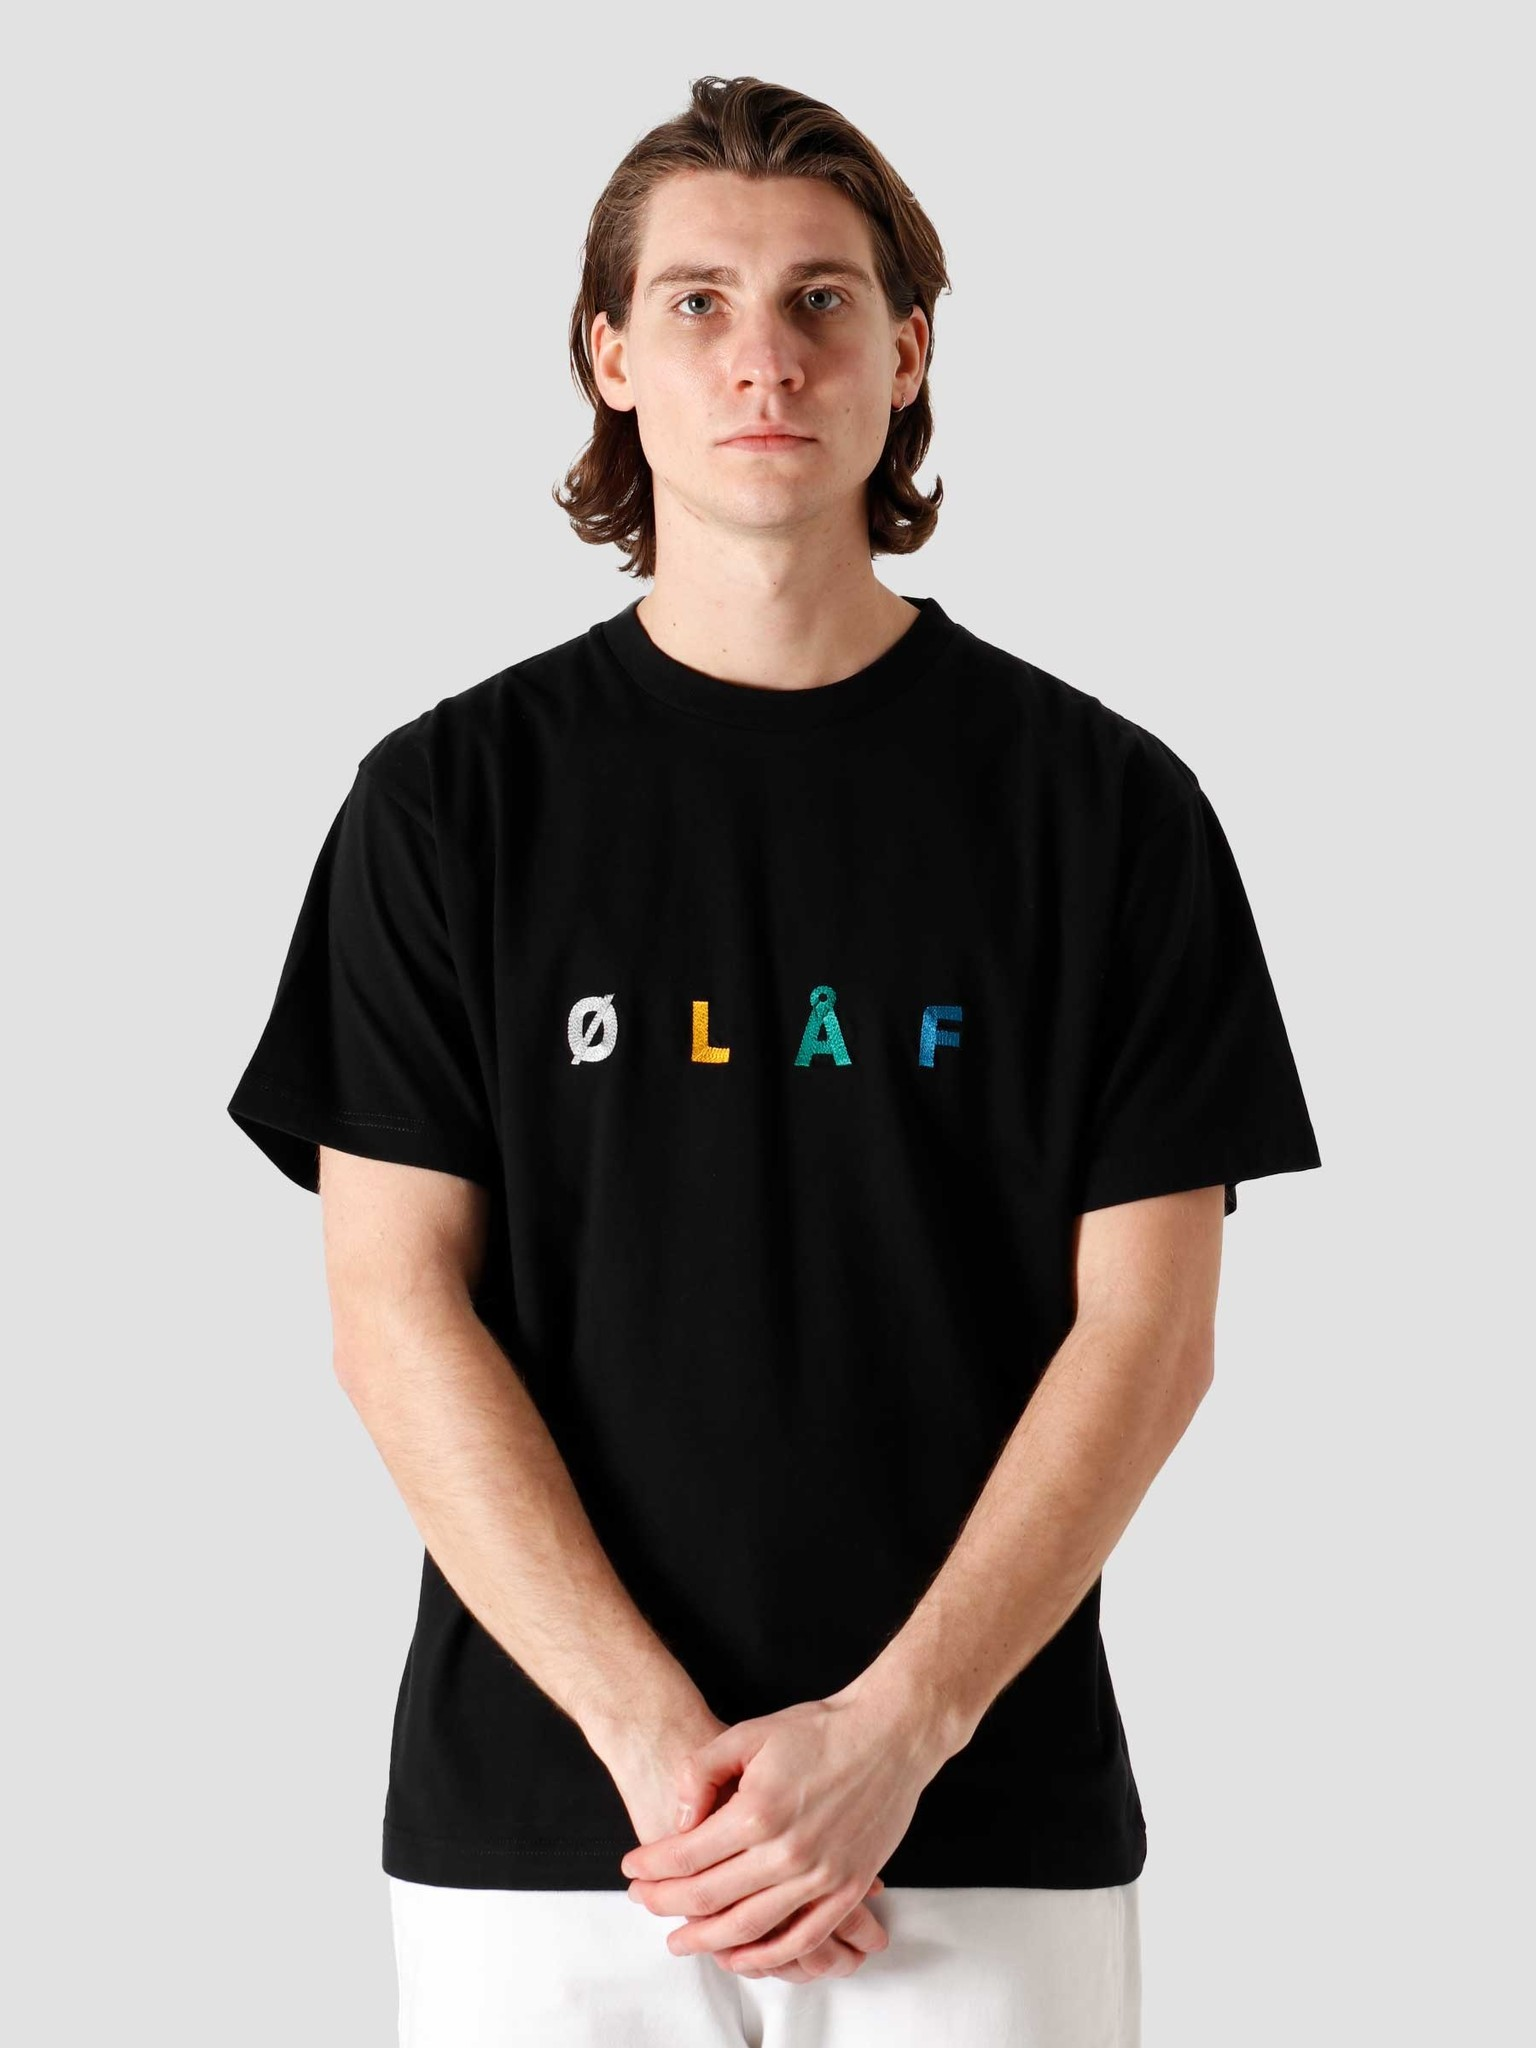 Olaf Hussein Olaf Hussein OH Chainstitch T-Shirt Black